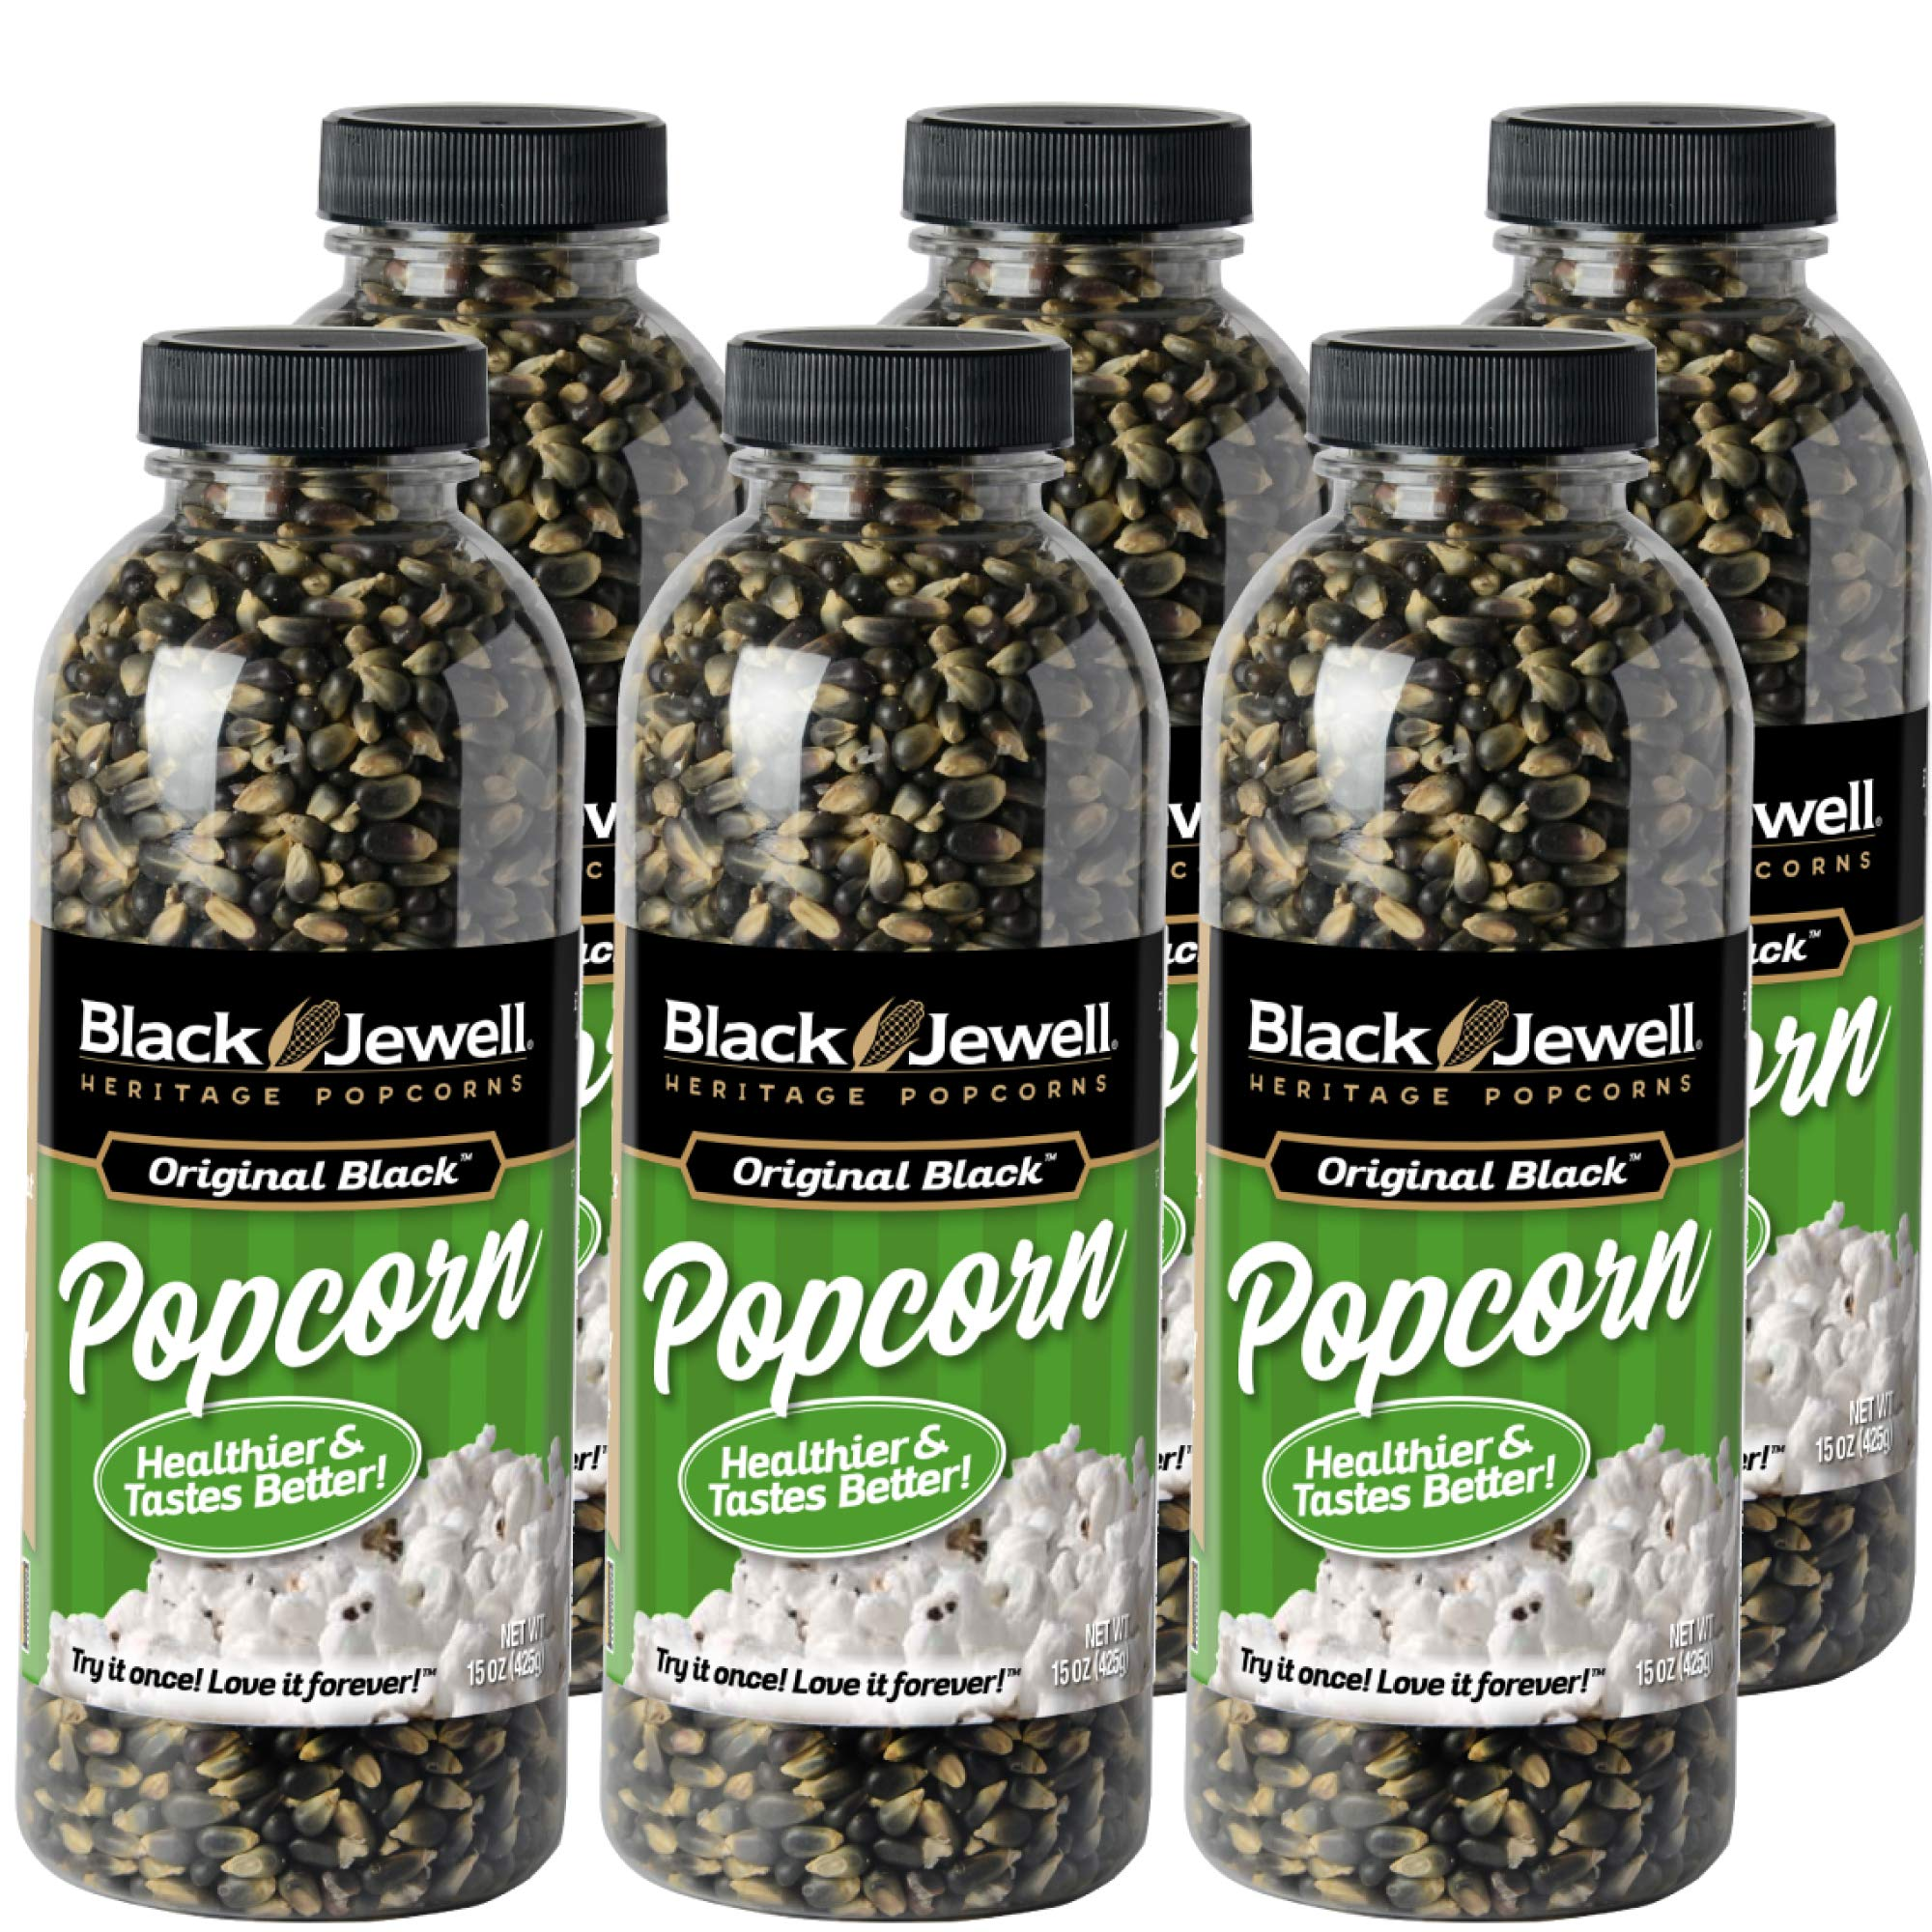 Black Jewell Hulless Original Black Popcorn Kernels 15 Oz (Pack of 6) by Black Jewell